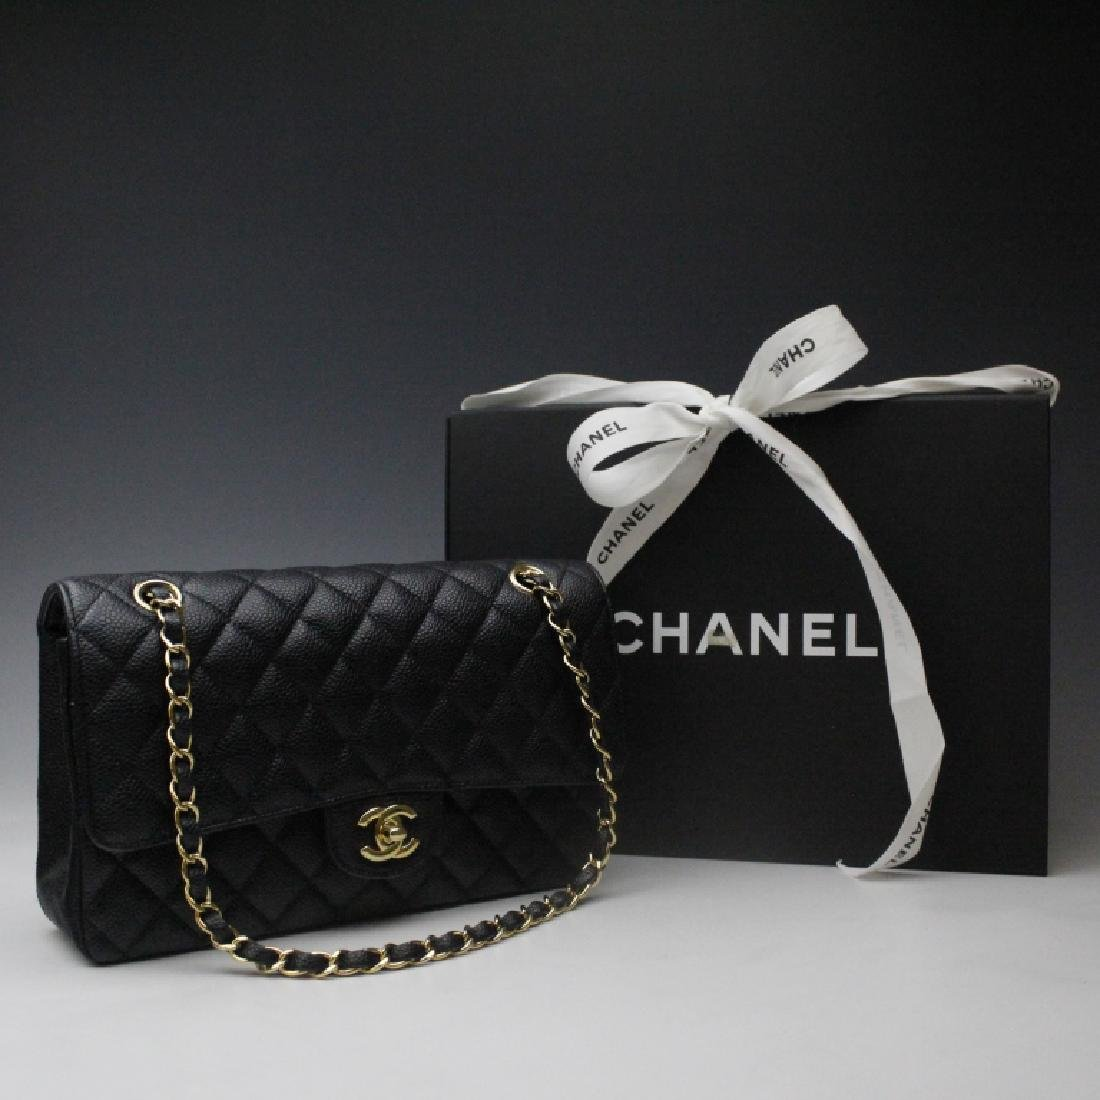 CHANEL Classic Double Flap Black Handbag Purse